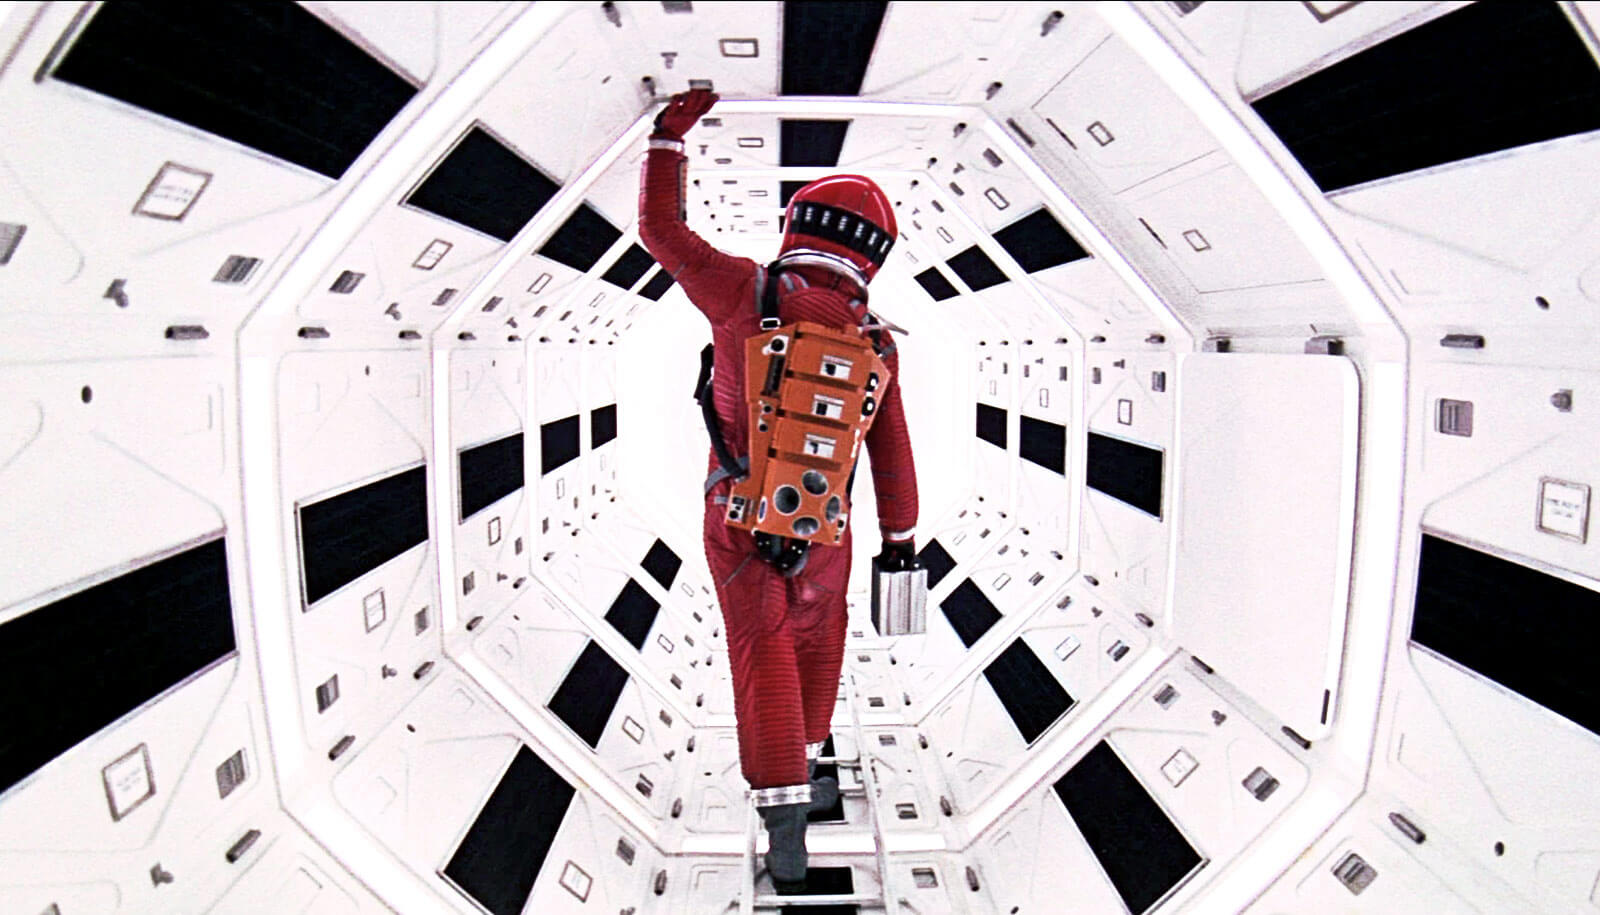 Keir Dullea in 2001: A Space Odyssey | Space Odyssey exhibition | Stanley Kubrick | STIRworld